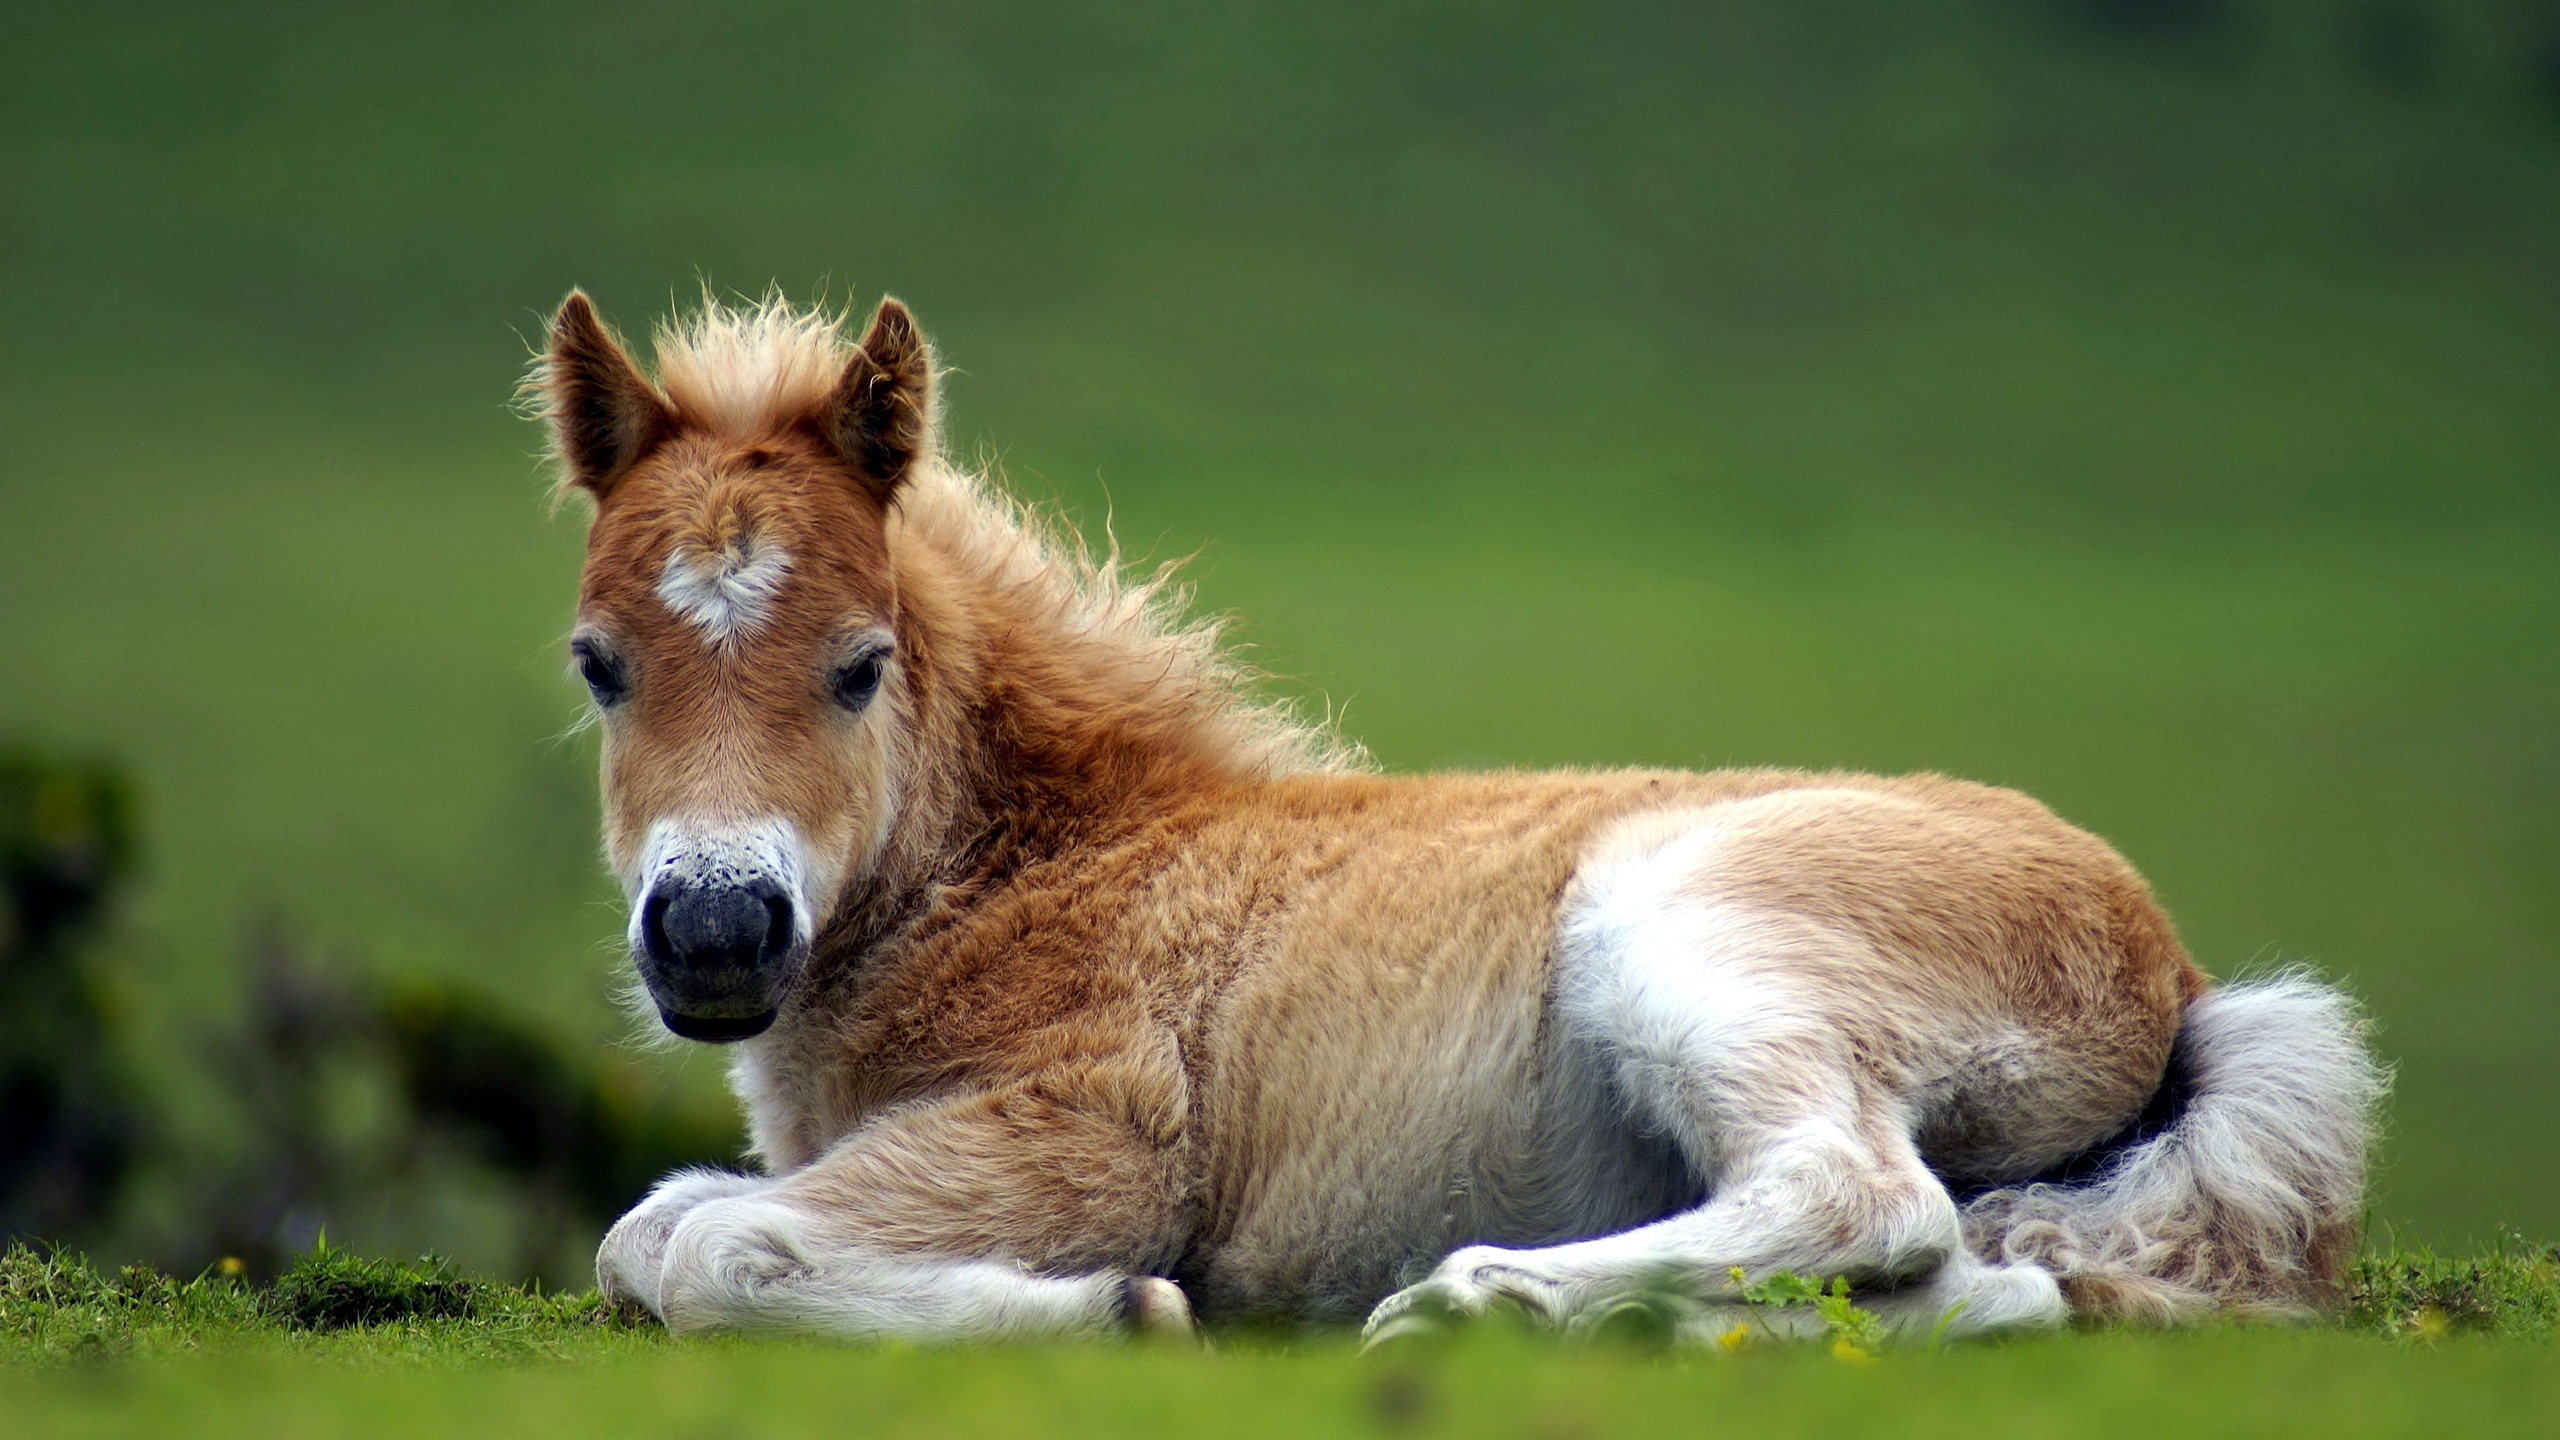 Wallpaper A Colt Lying On The Ground 2560x1600 Hd Picture Image